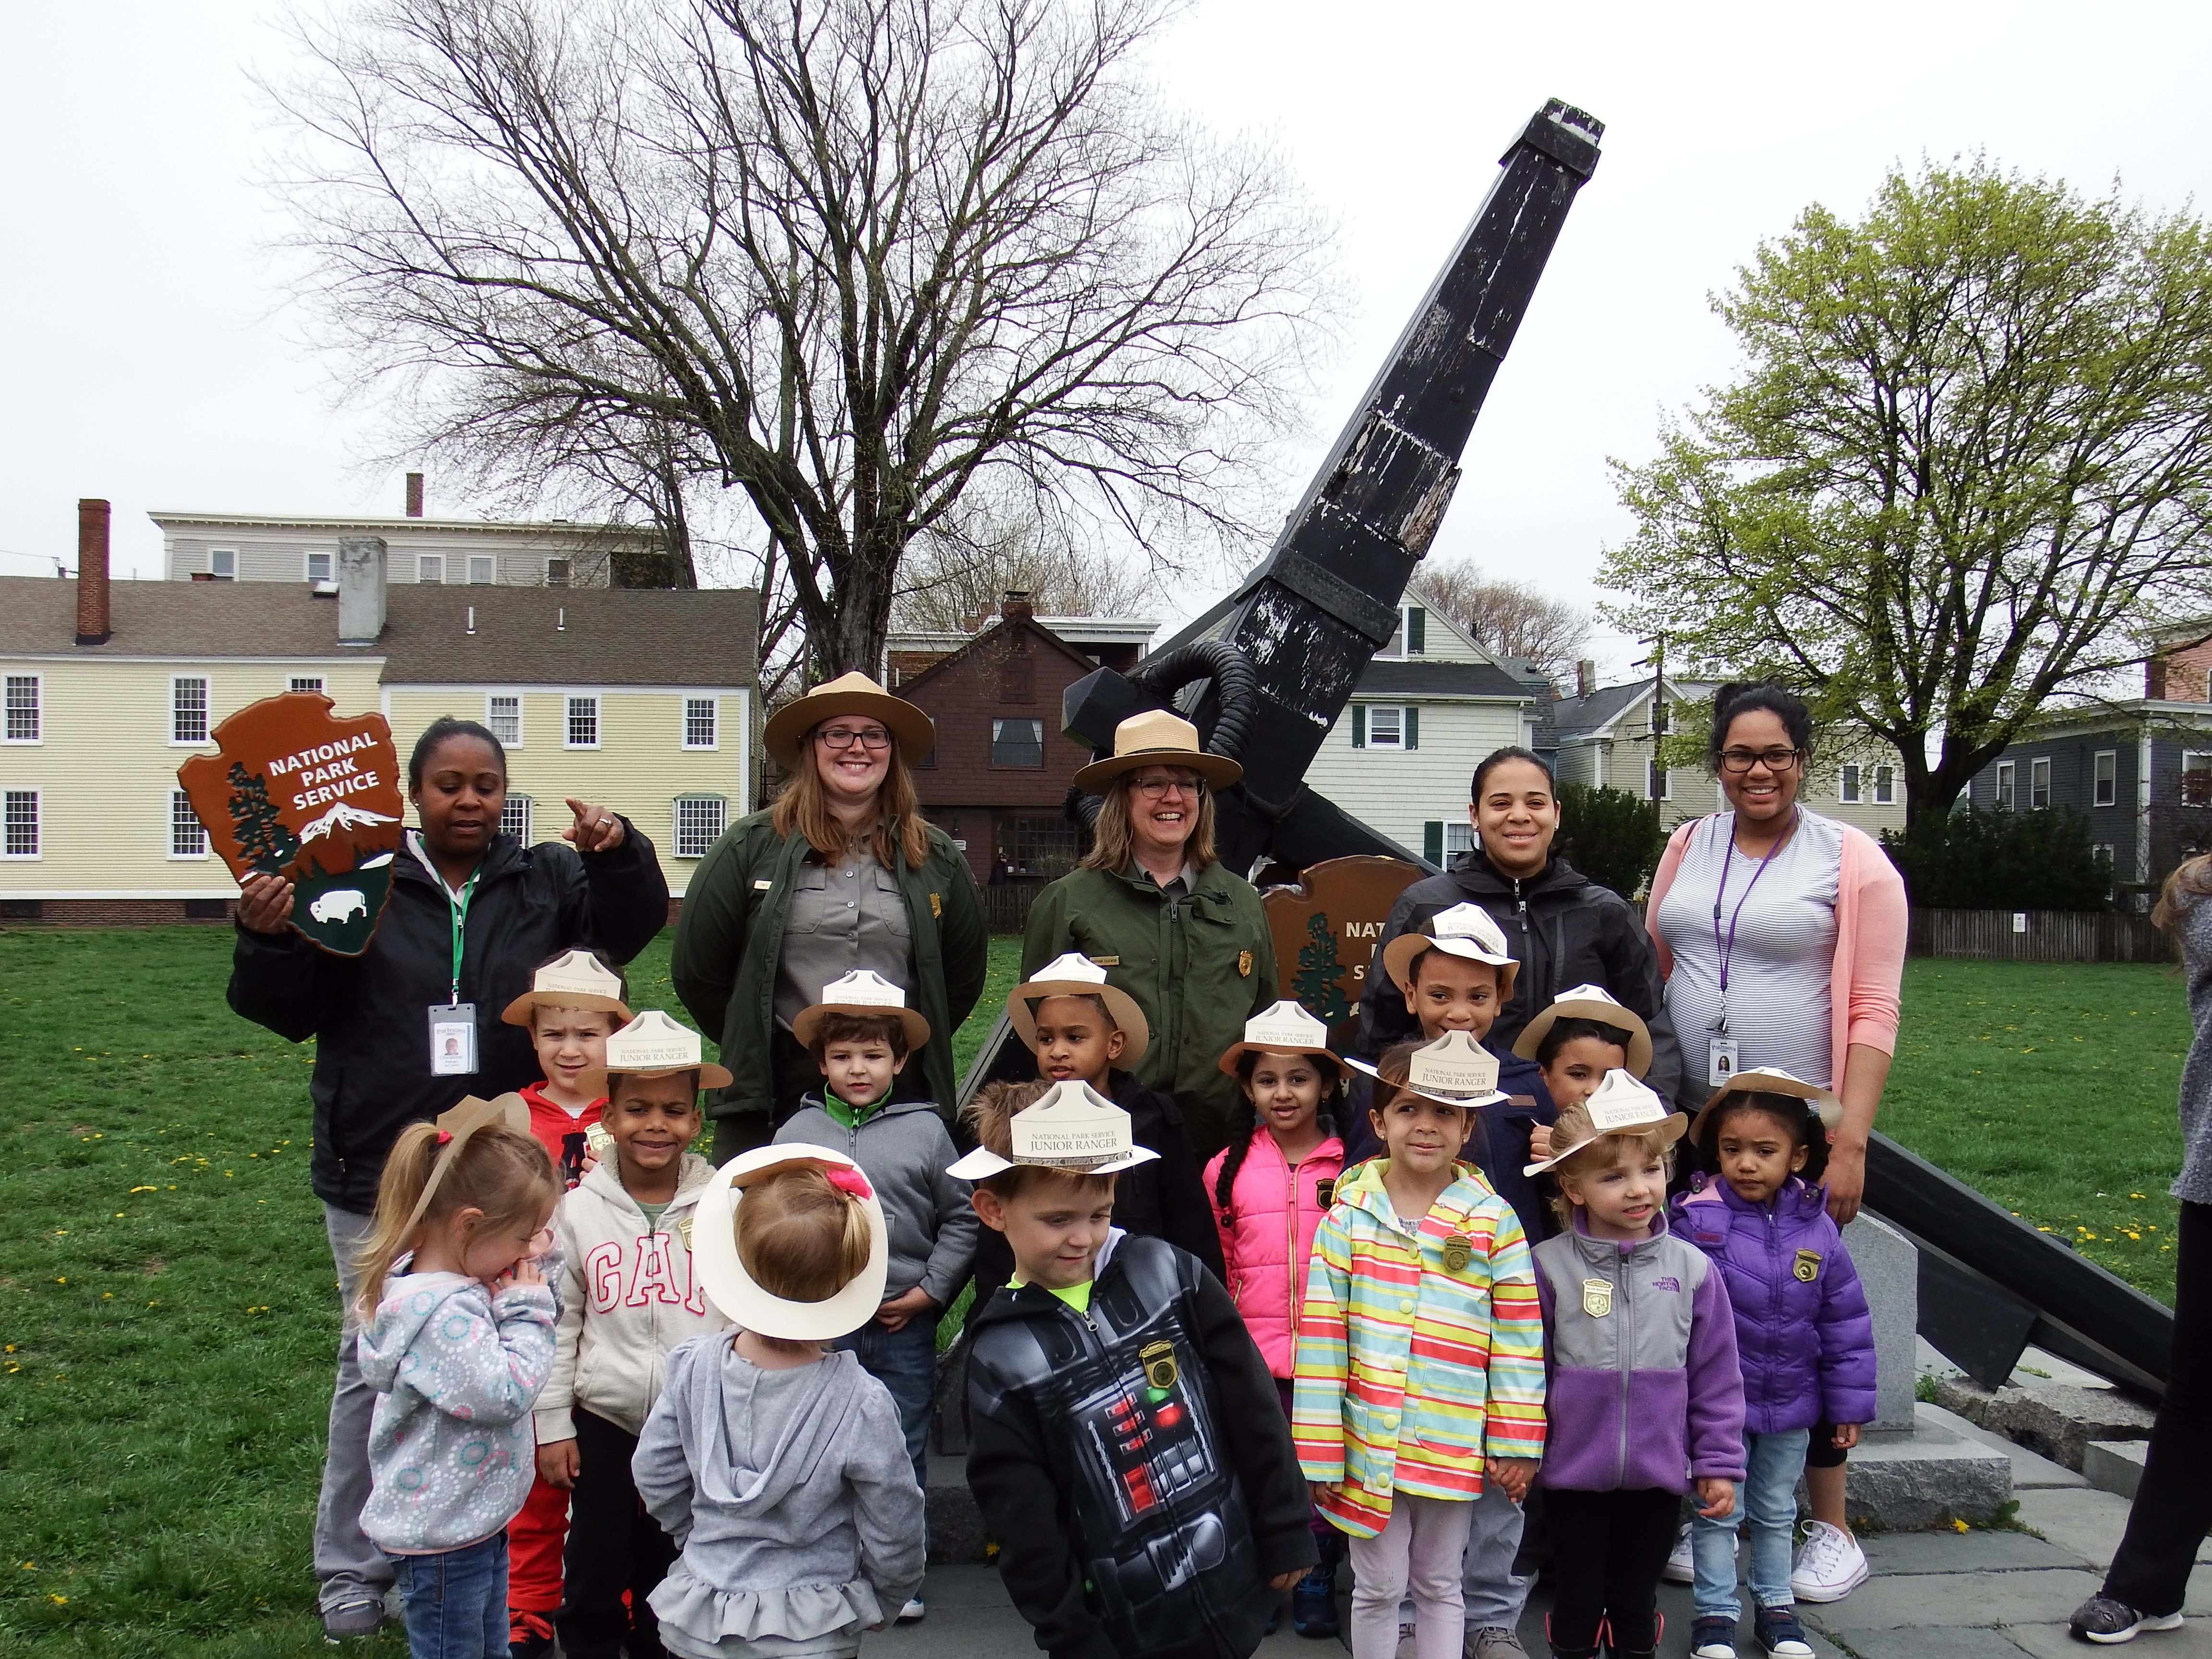 Education Rangers help preschoolers learn about the site